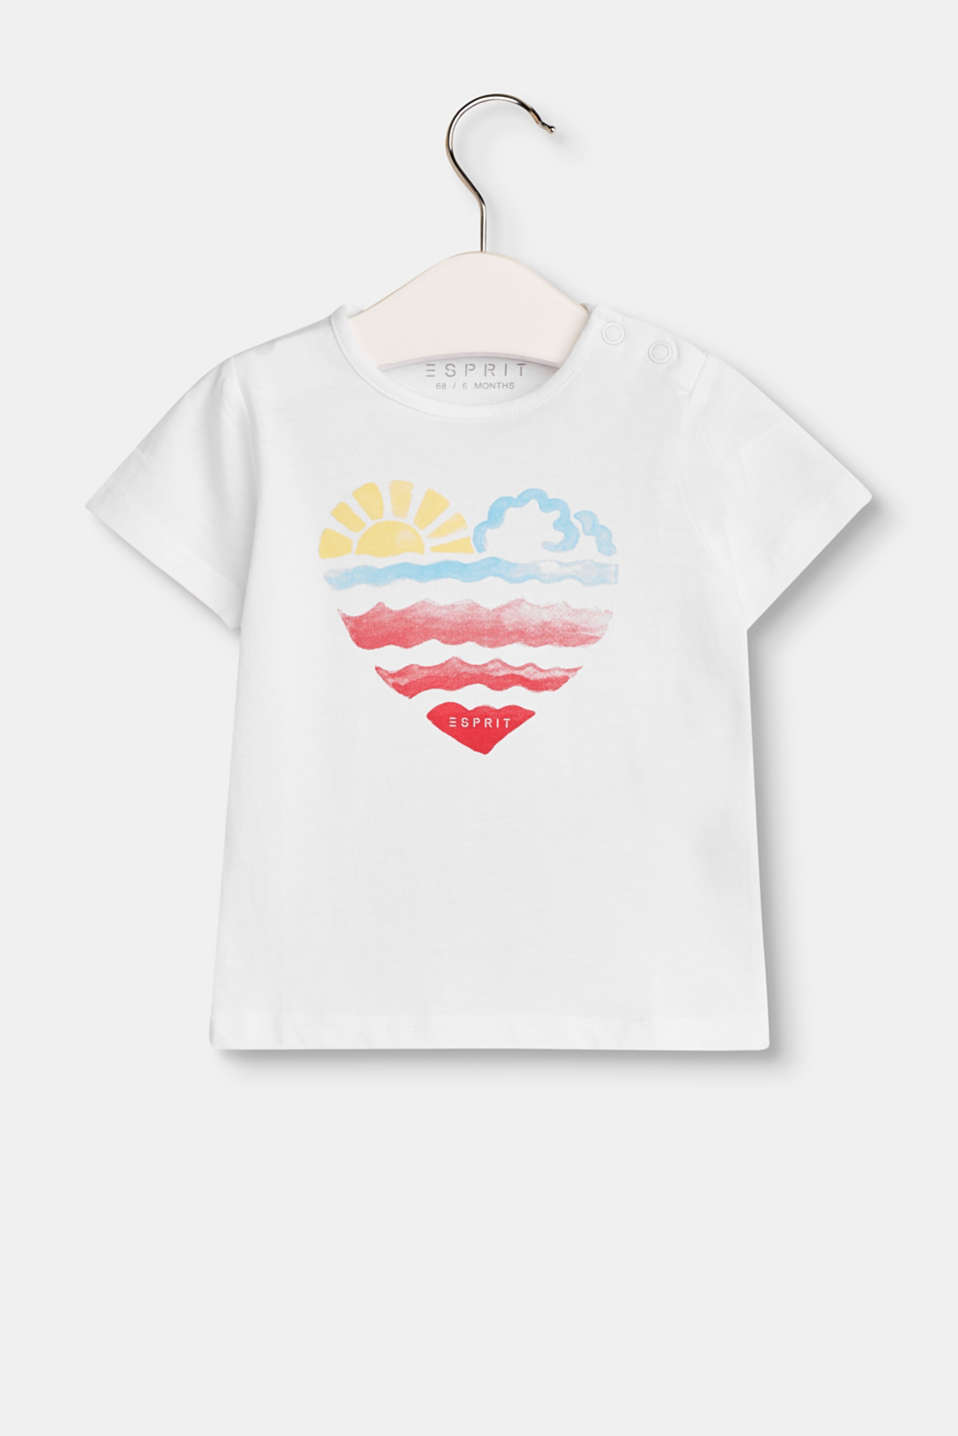 Esprit - T-shirt with a heart print, in 100% cotton